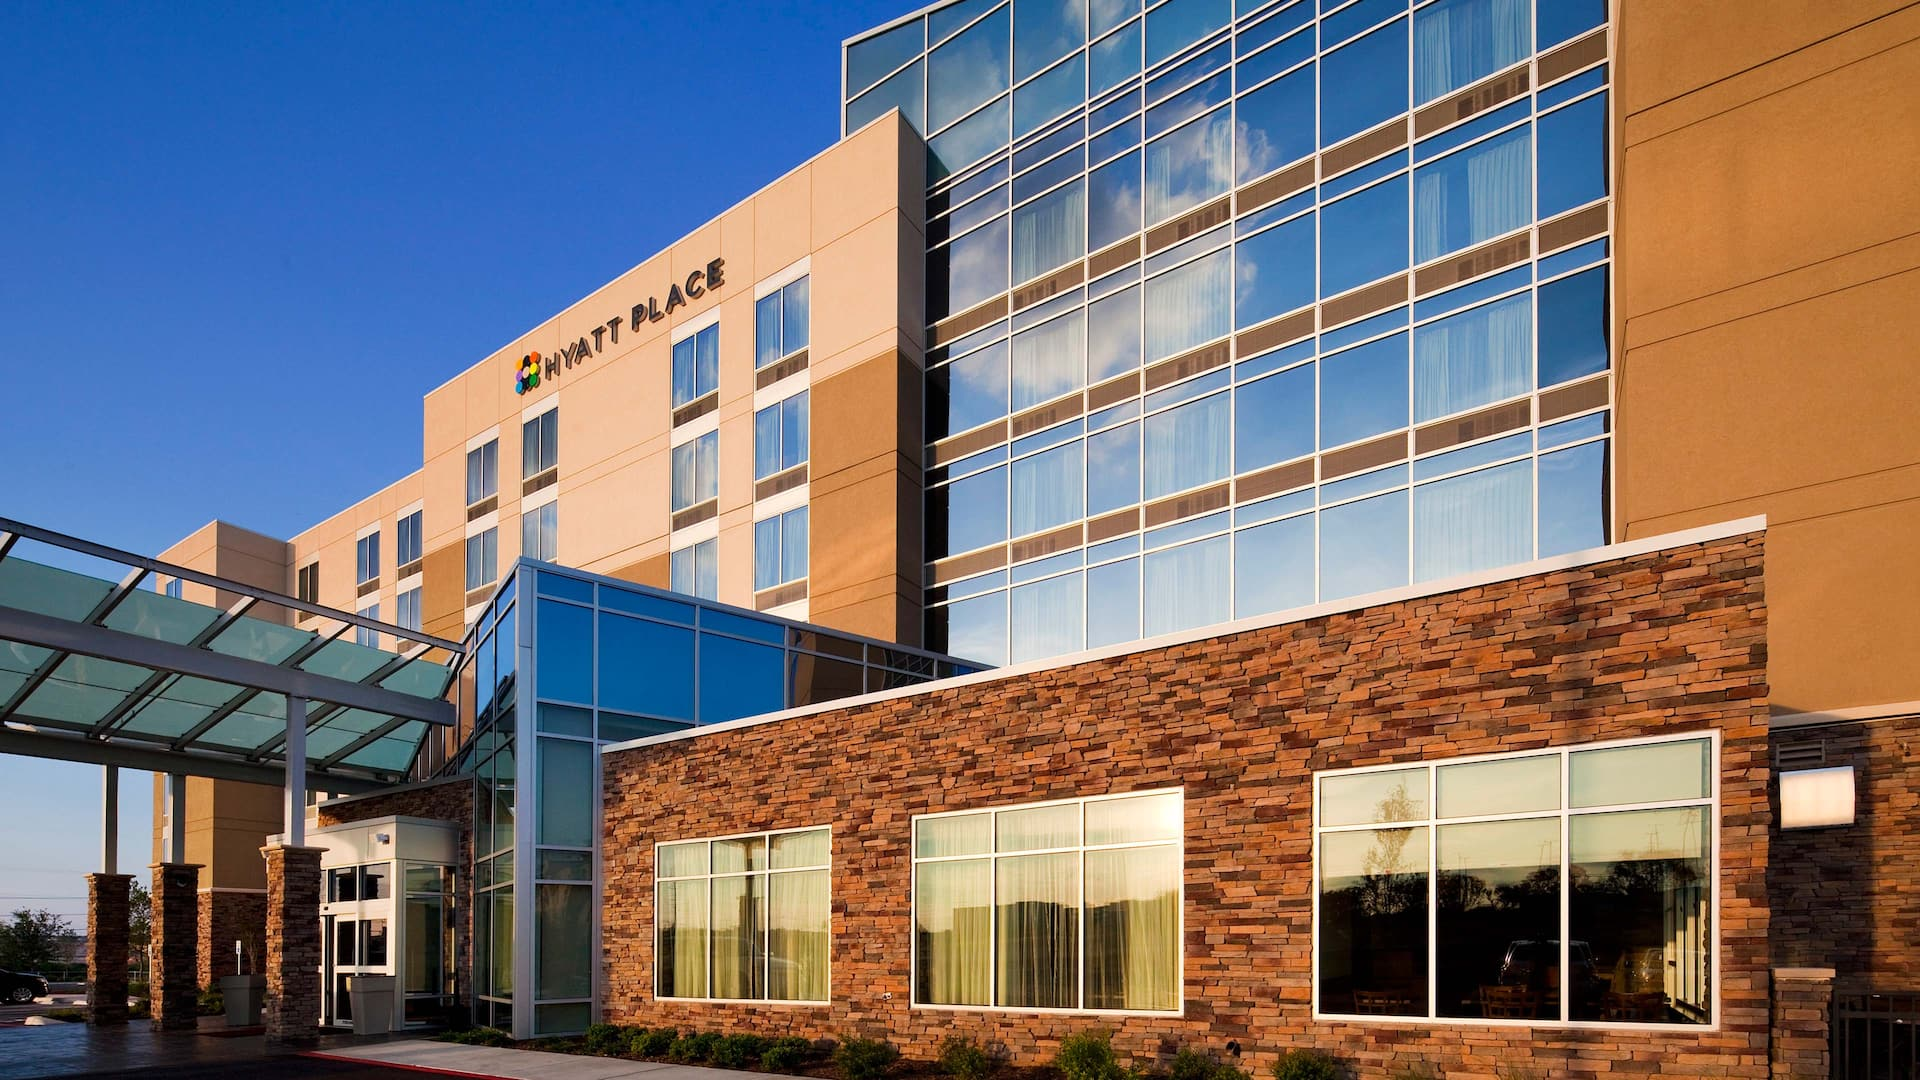 Hyatt Place San Antonio North/Stone Oak Exterior